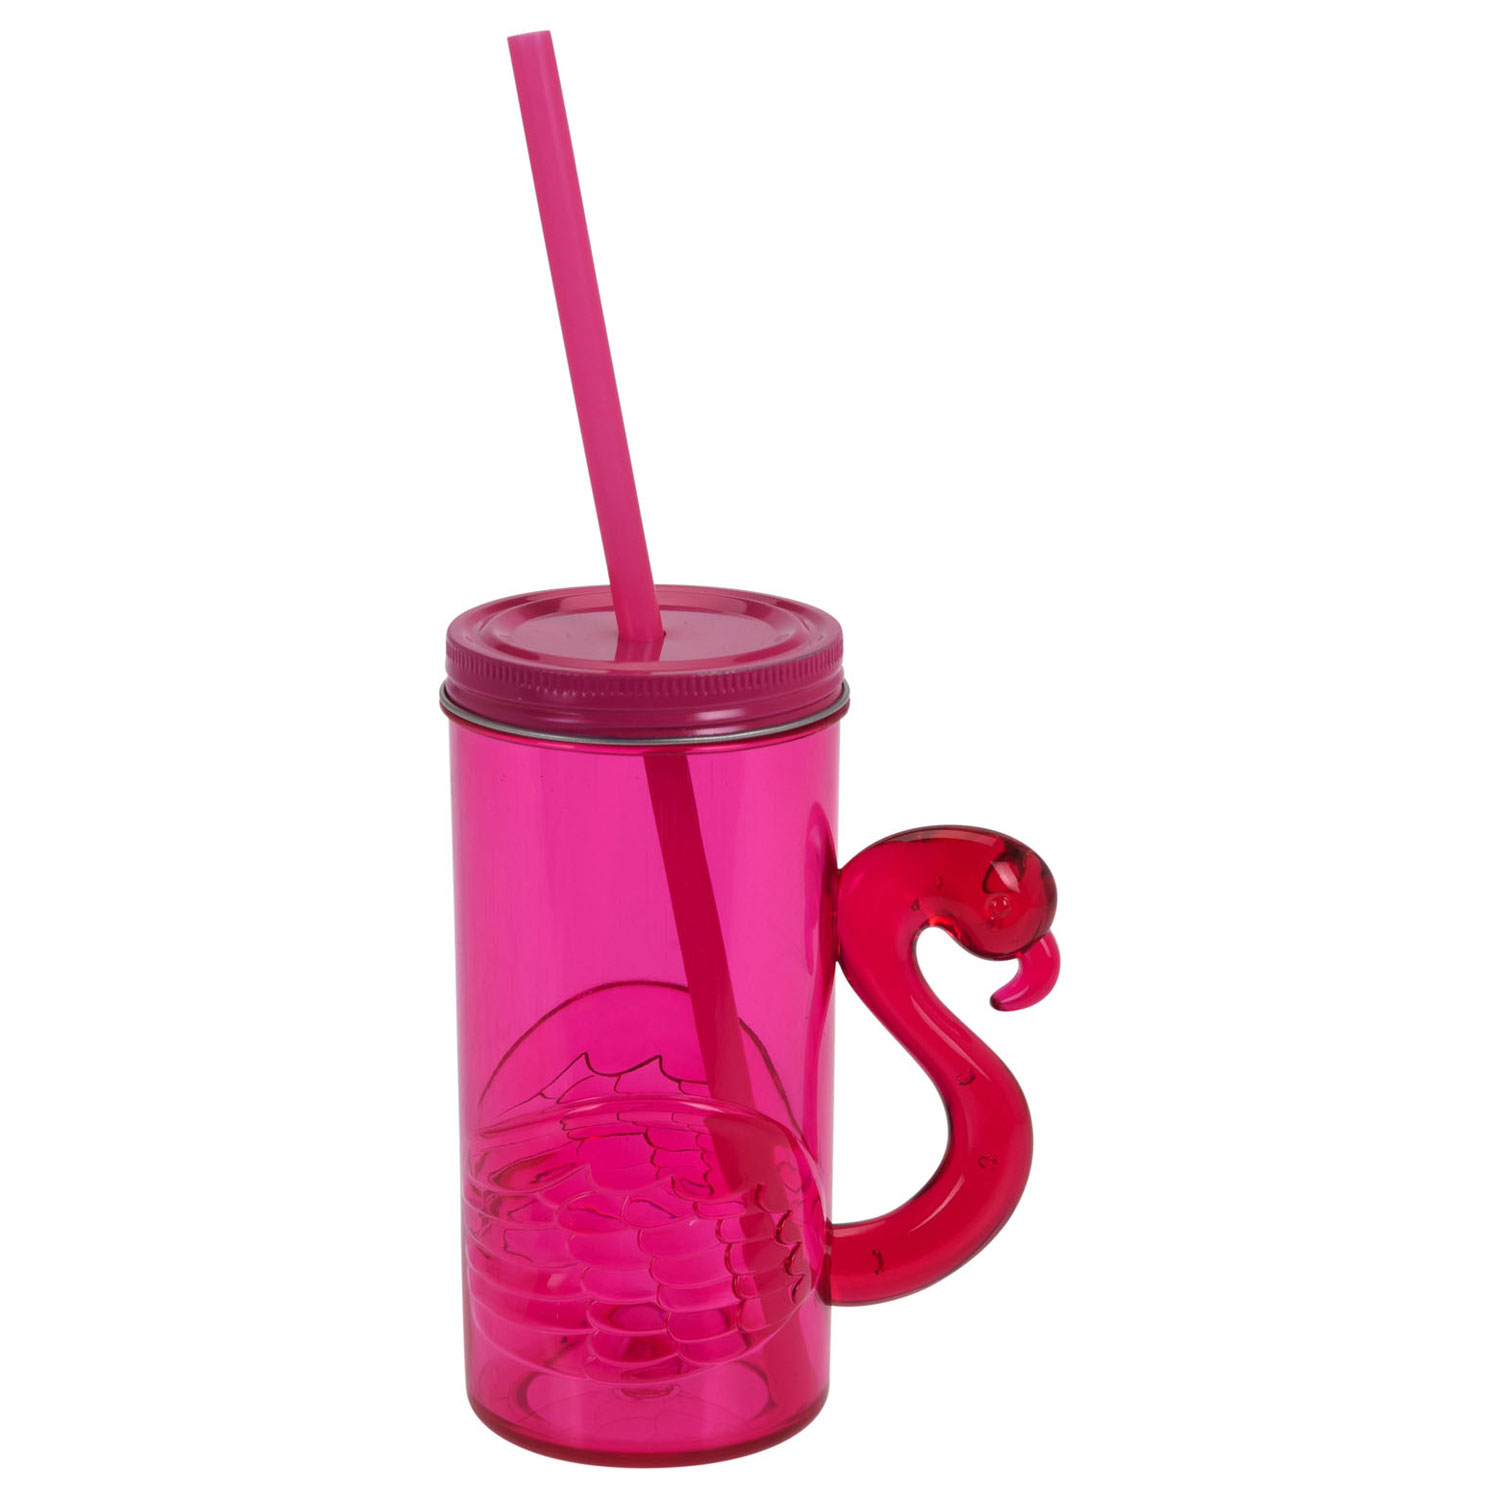 Drinkbeker Flamingo